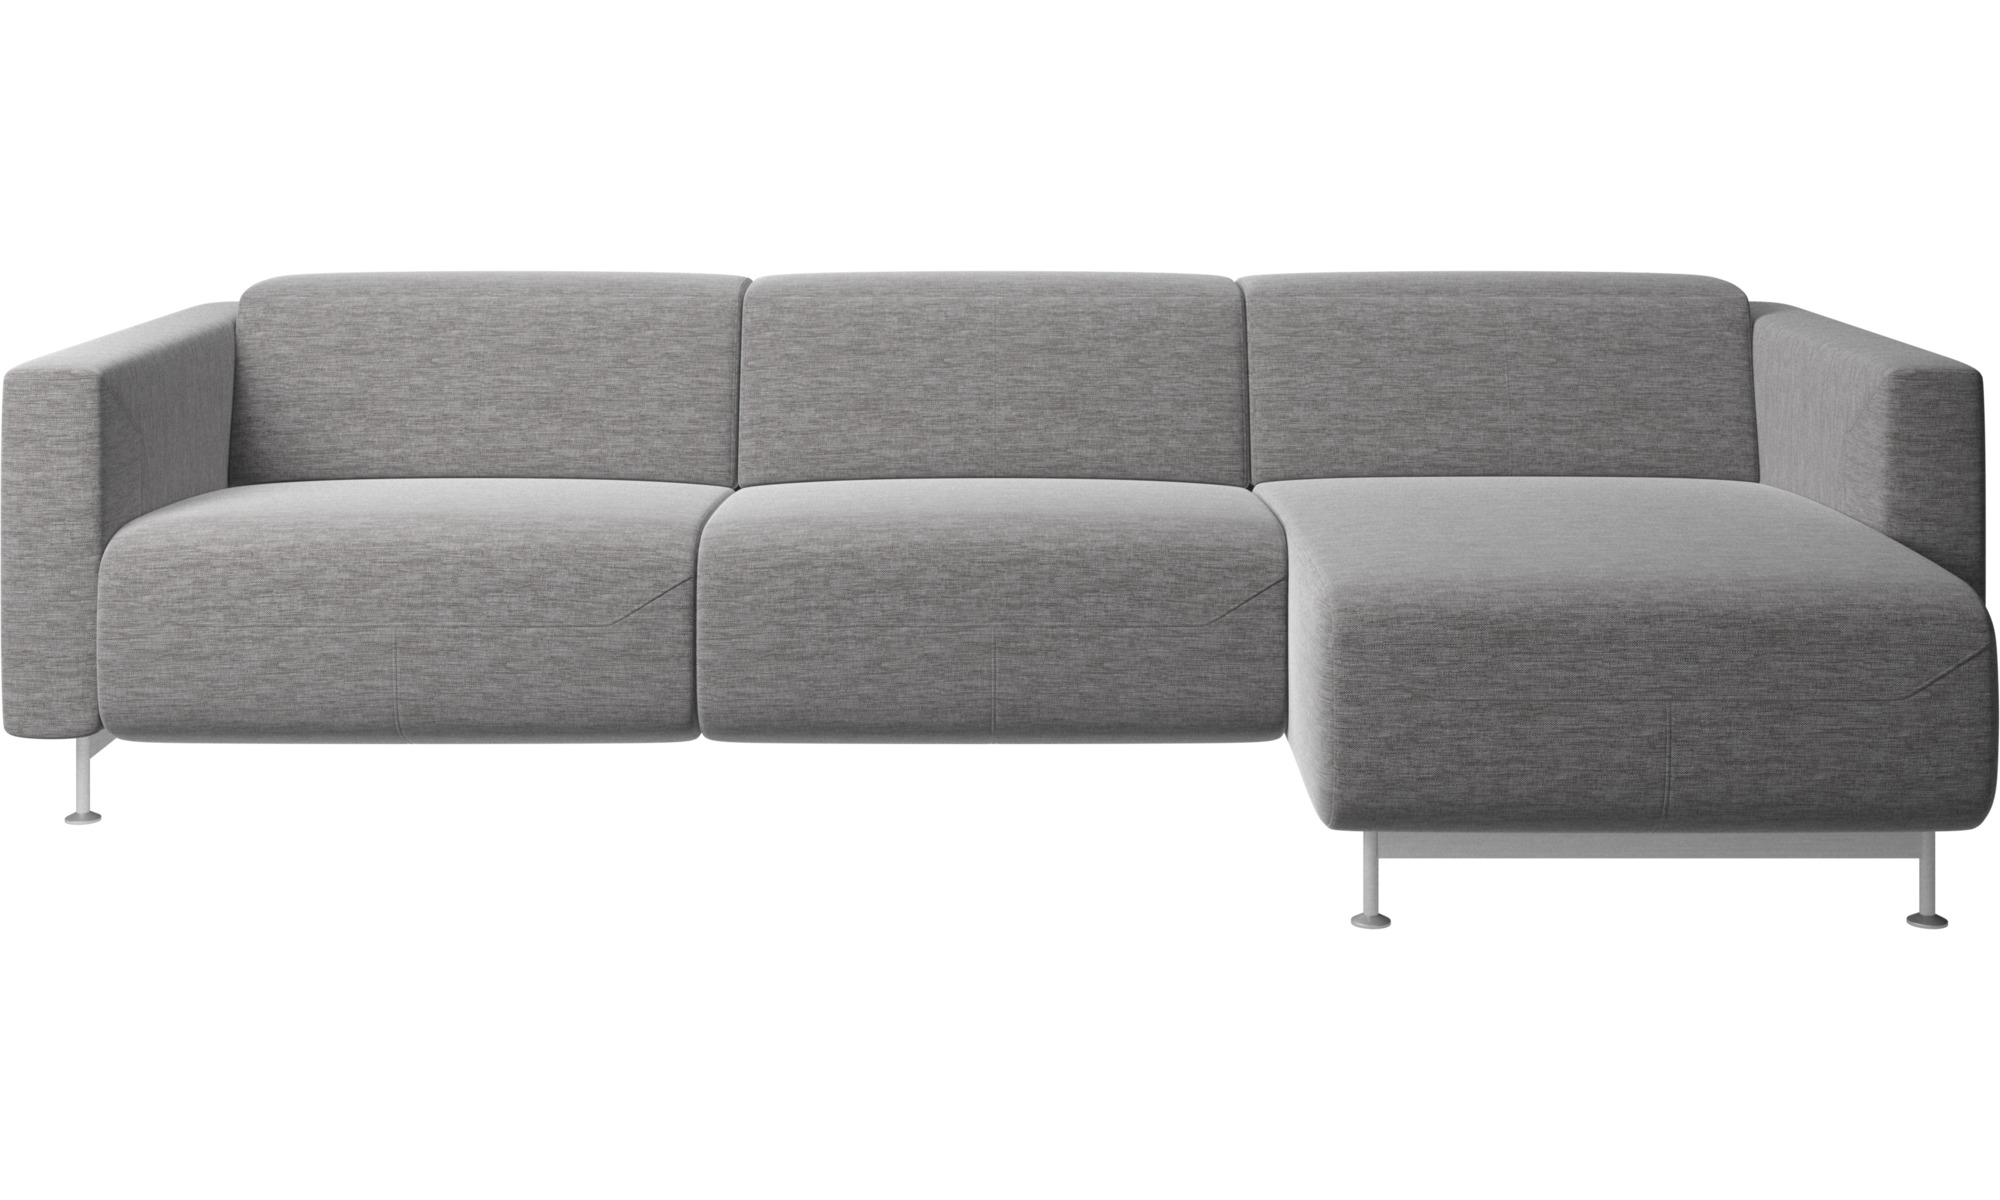 - Recliner Sofas - Parma Reclining Sofa With Chaise Lounge - BoConcept